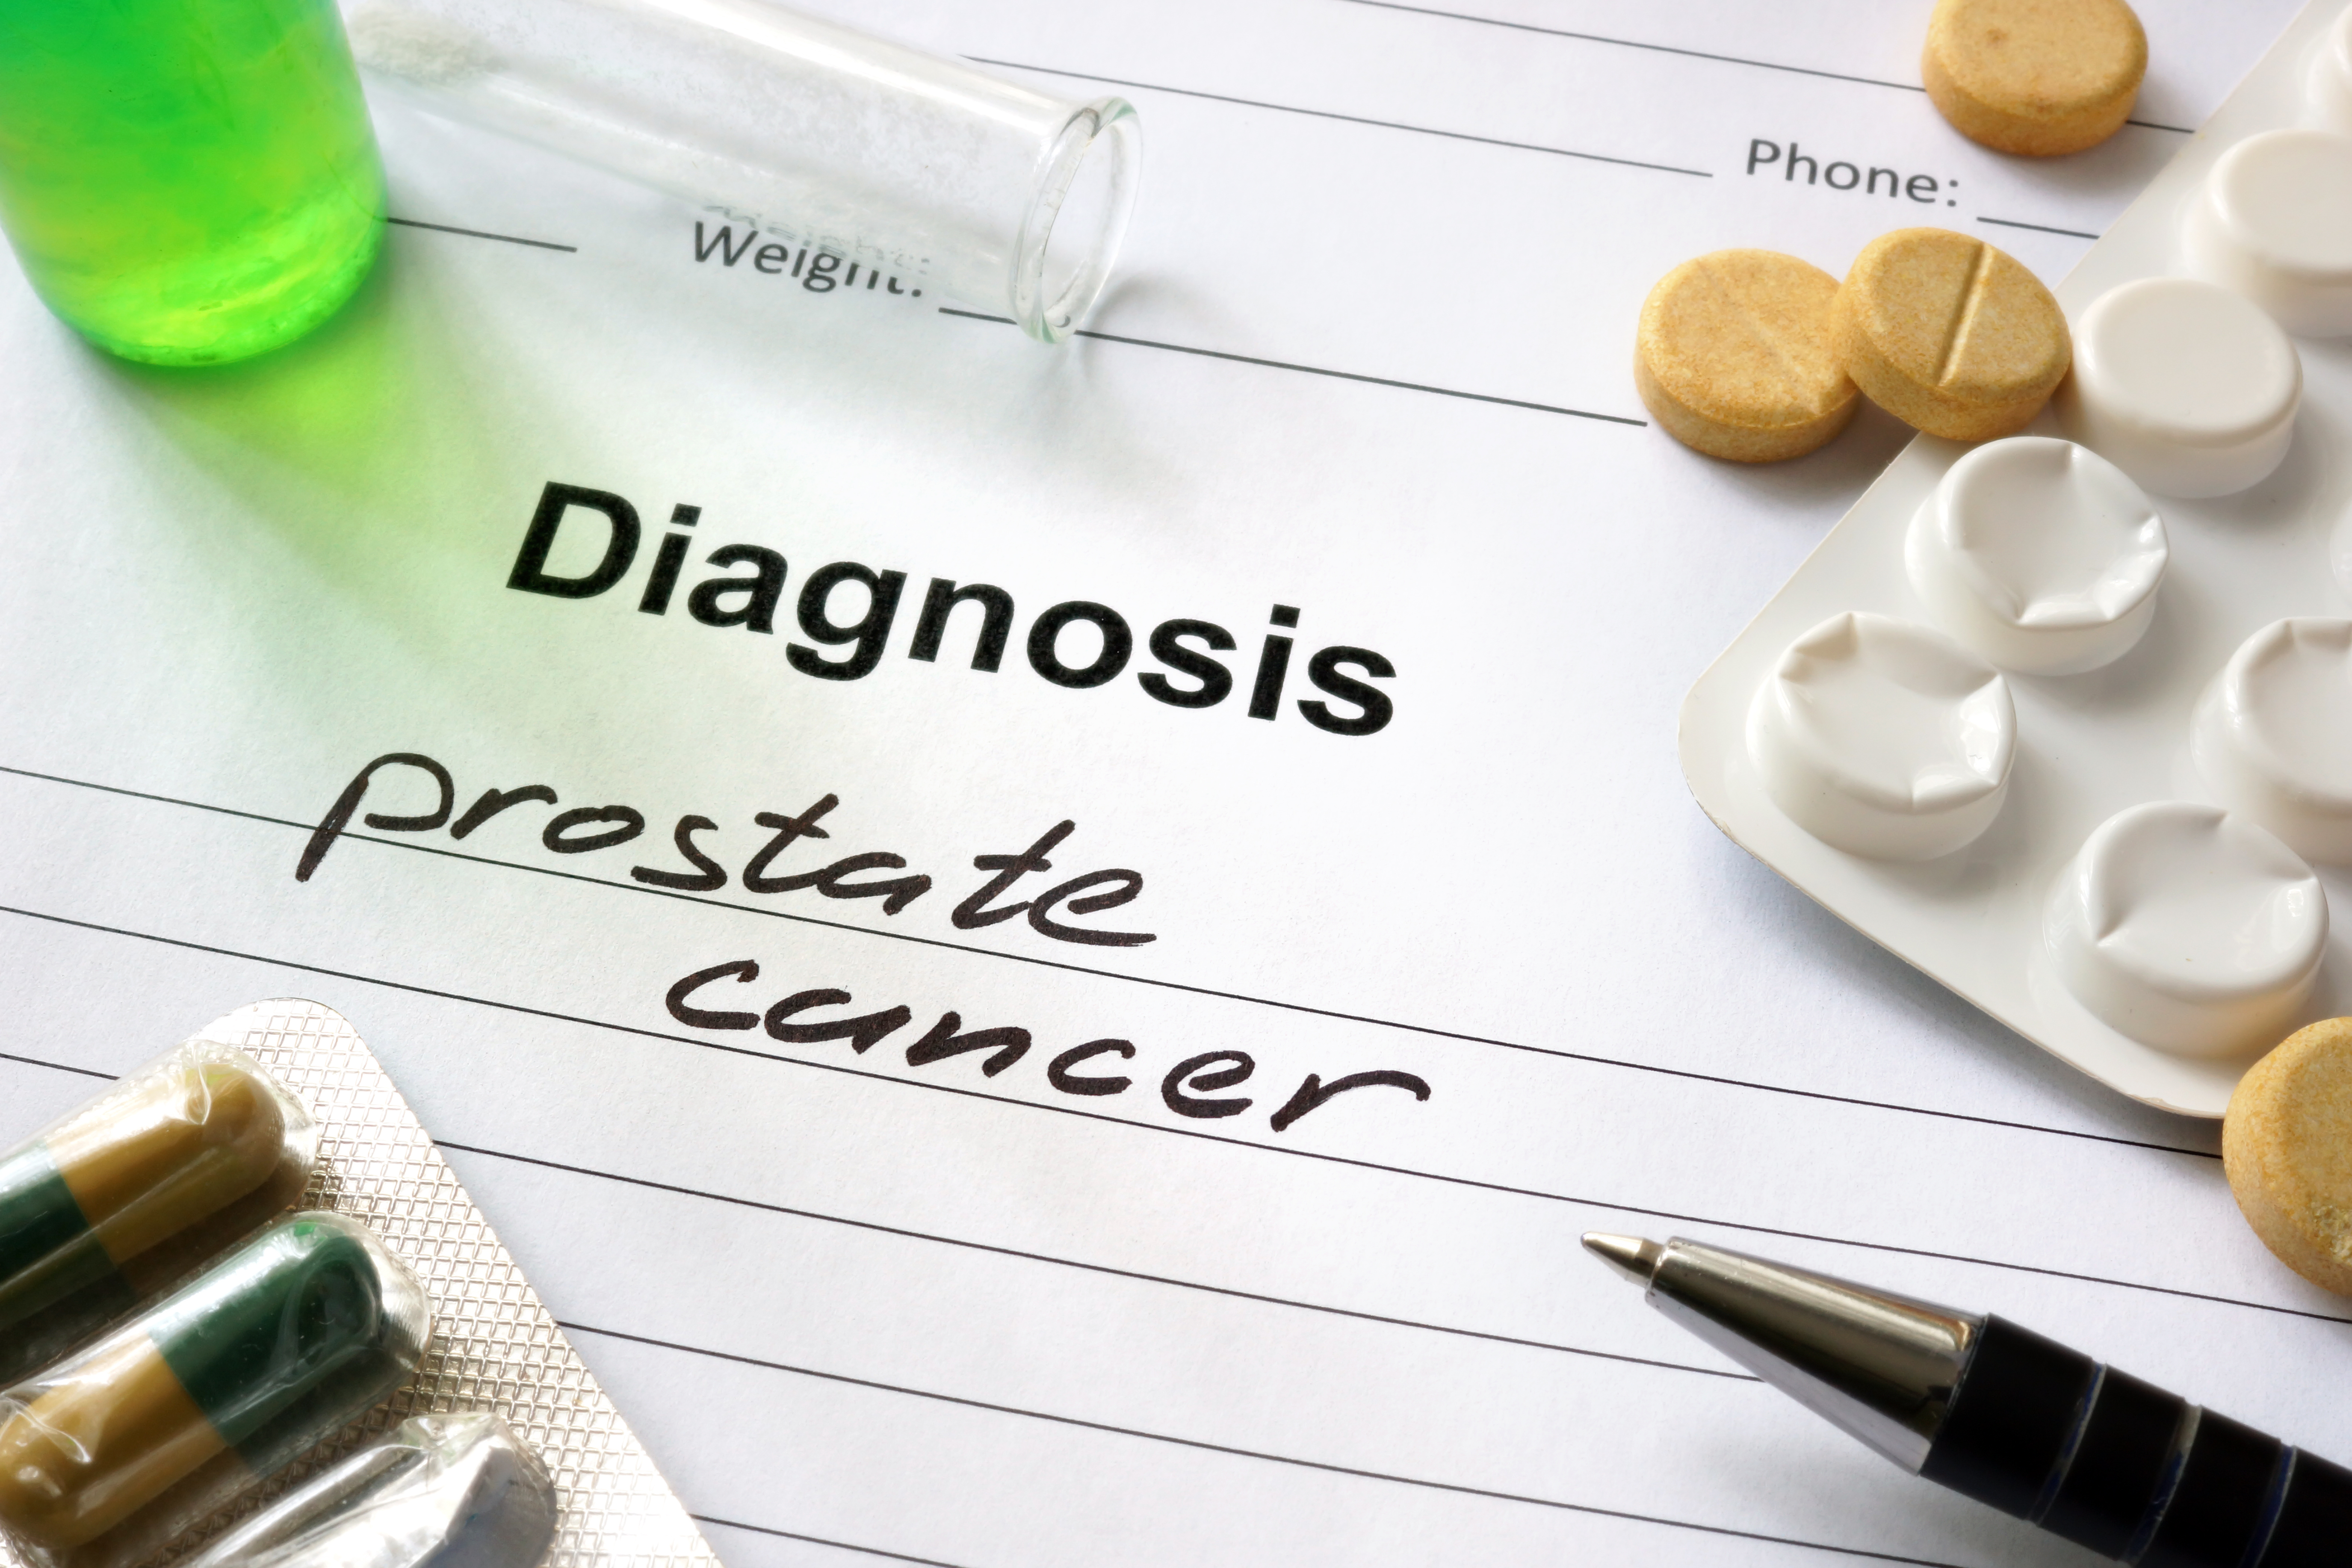 I Have Prostate Cancer: What Should I Expect?